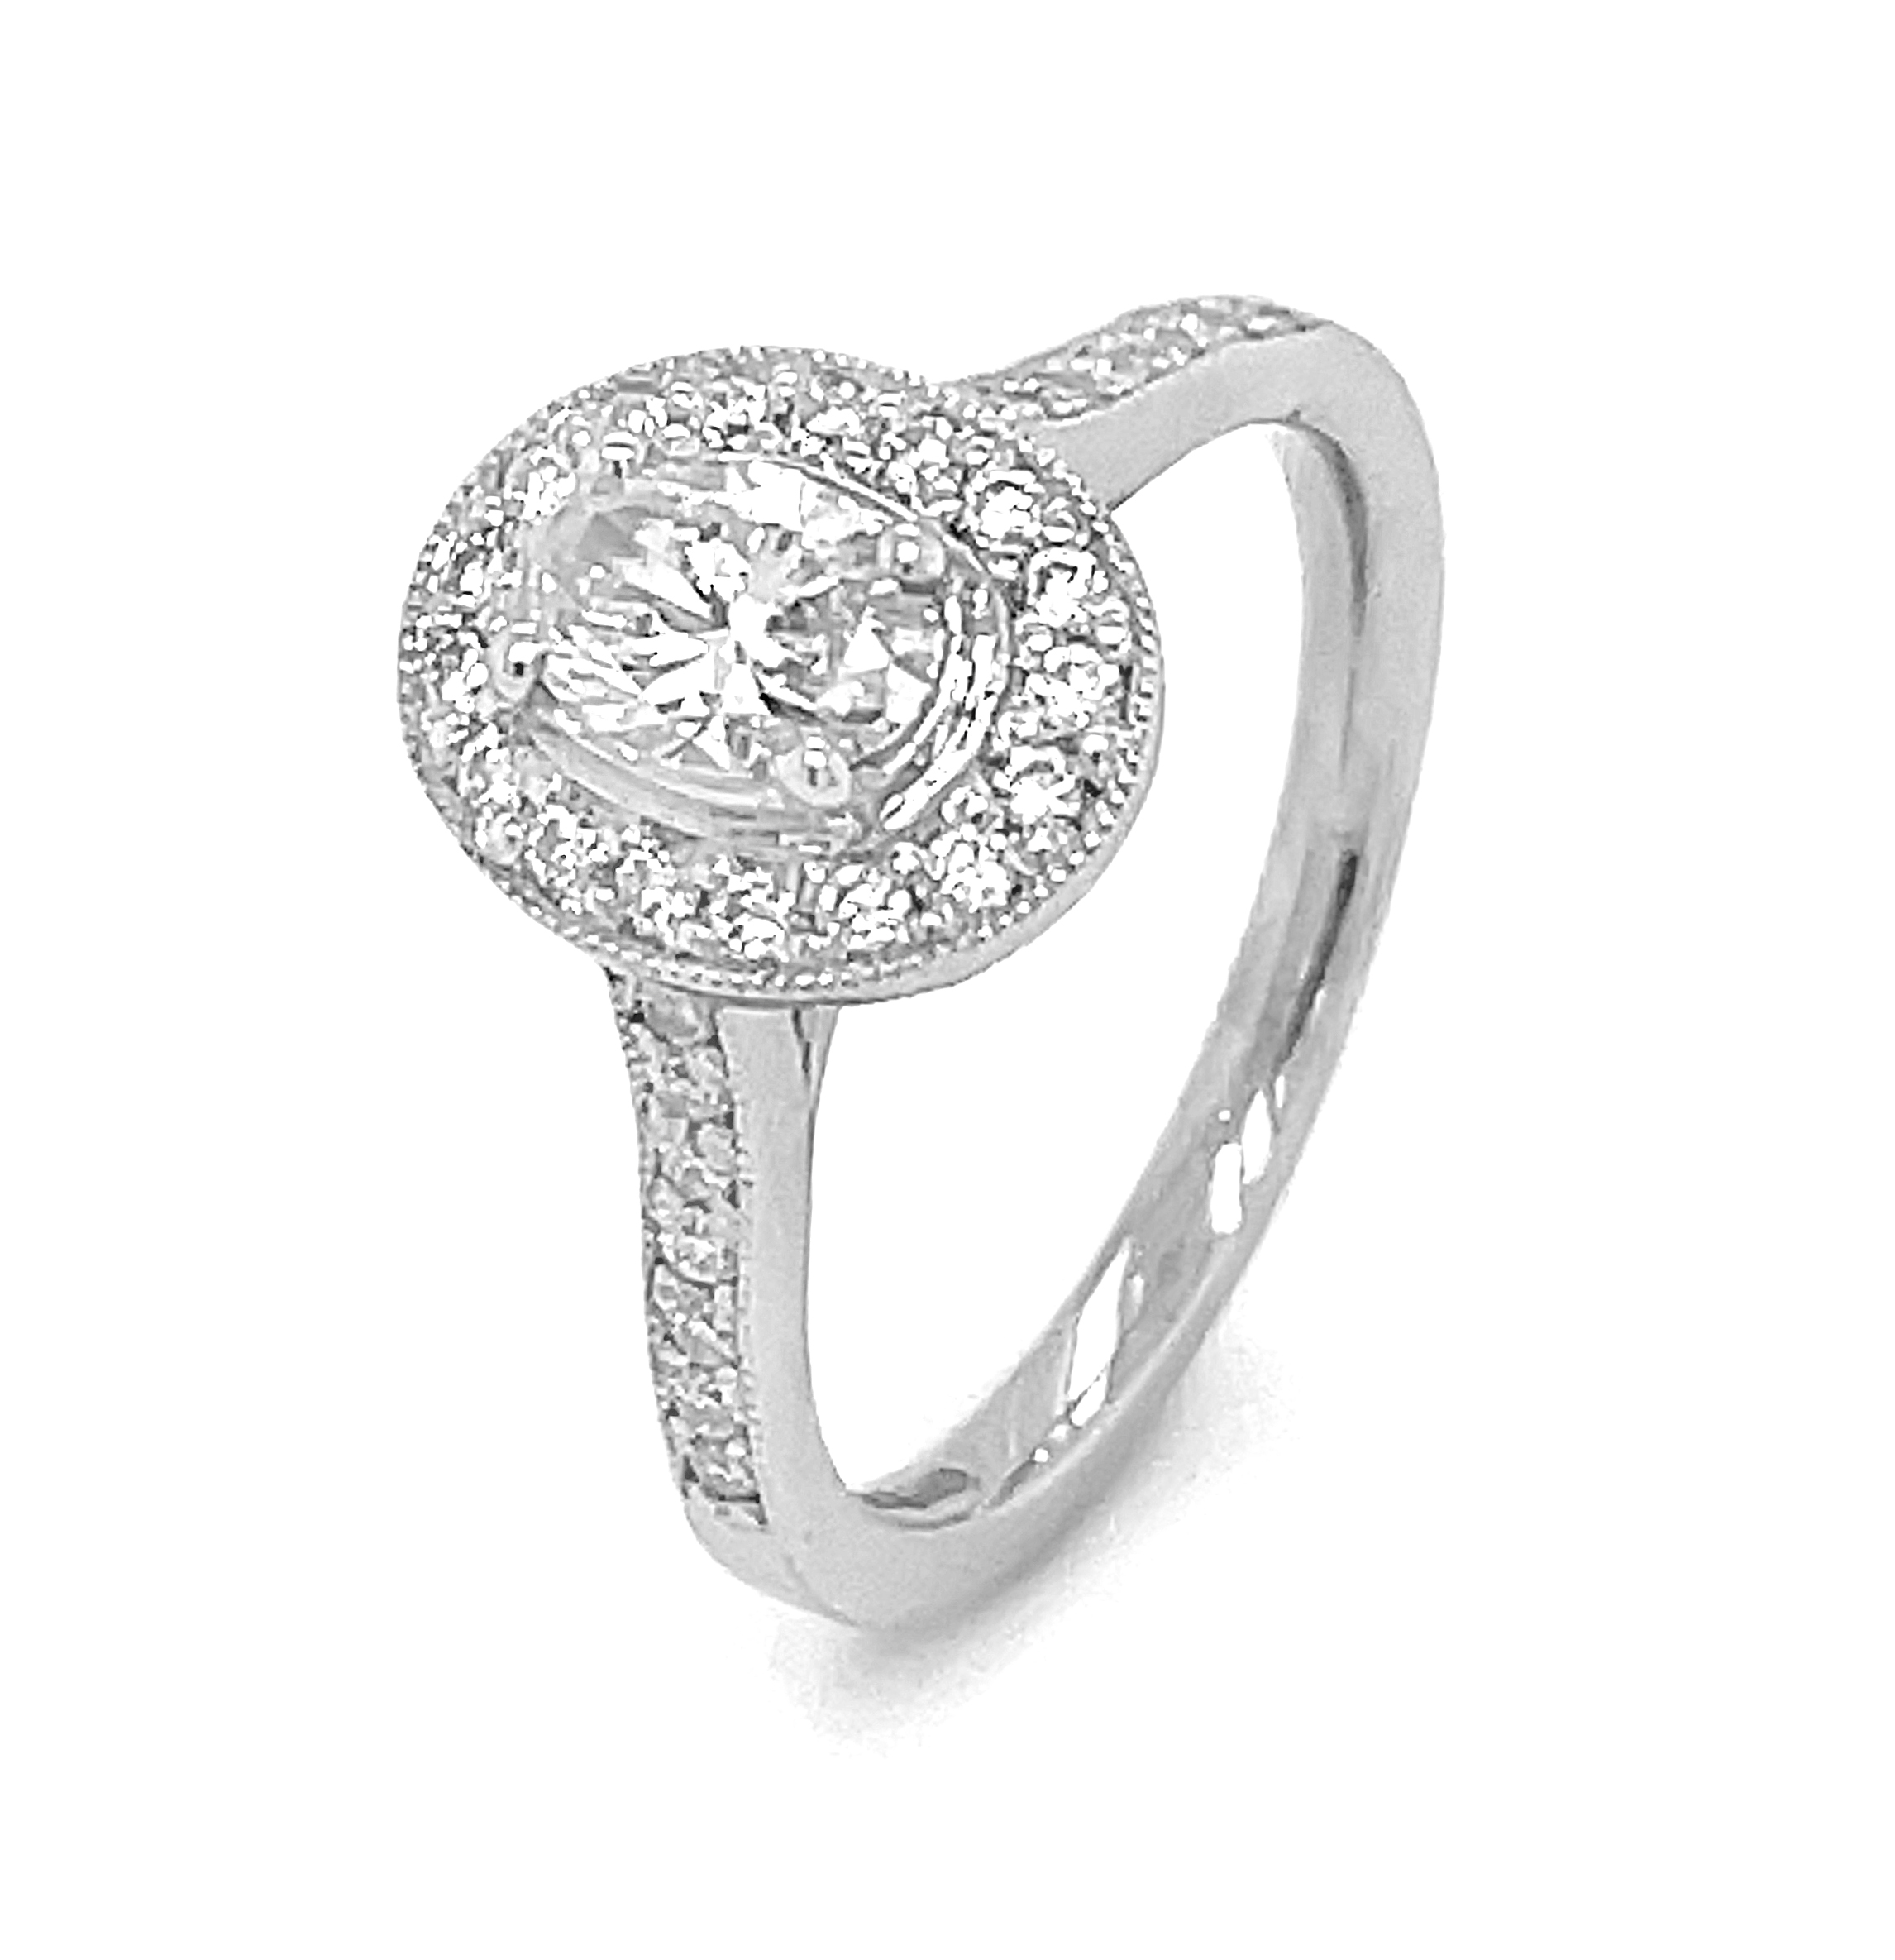 0.42cts Oval Diamond Cluster Ring